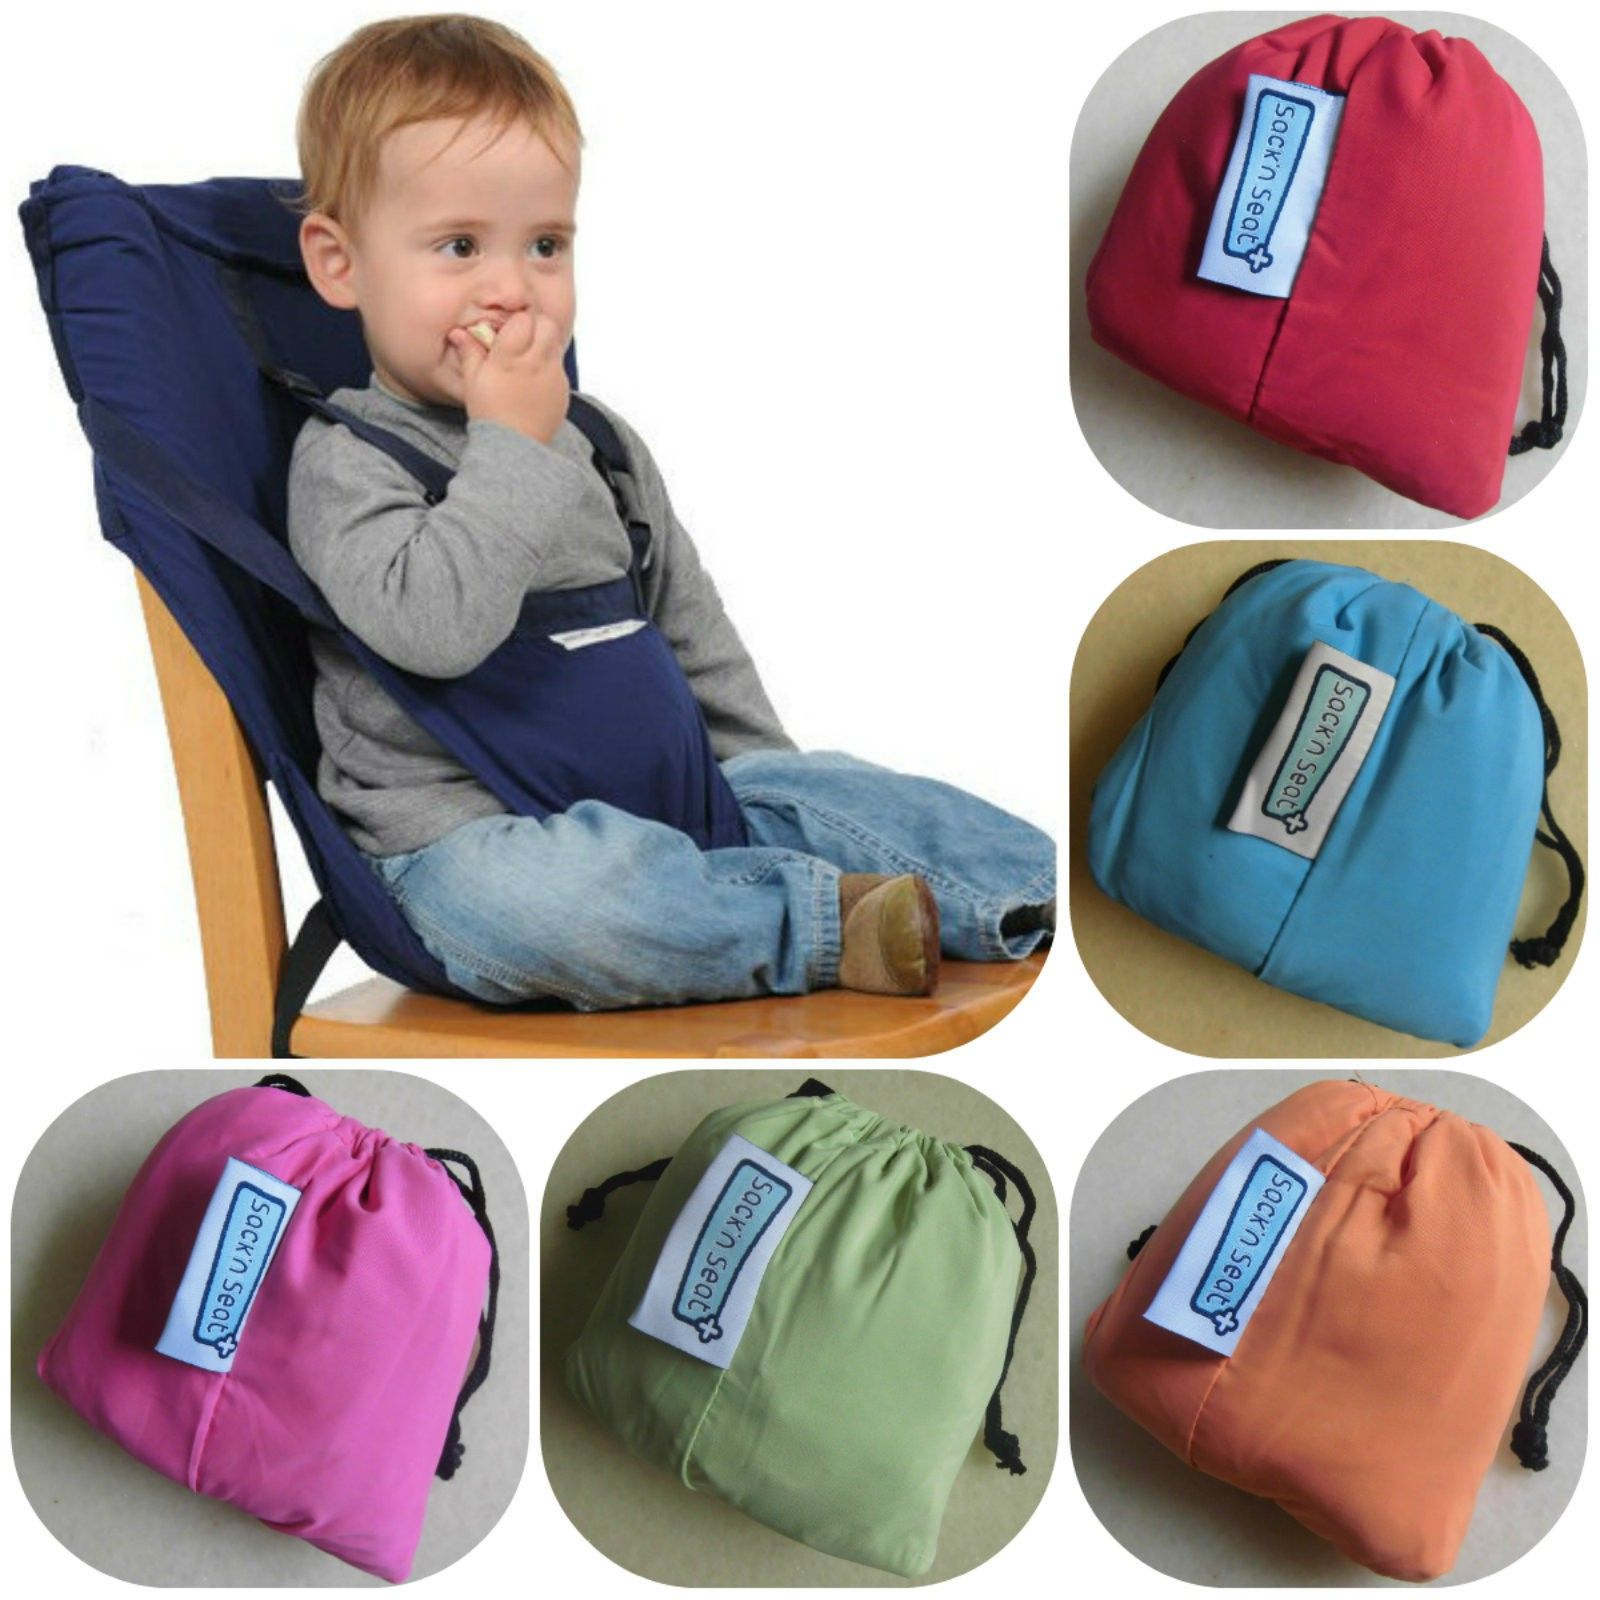 Portable High Chair Baby Modern Lounge Chairs Sack N Seat Shoulder Strap Babies